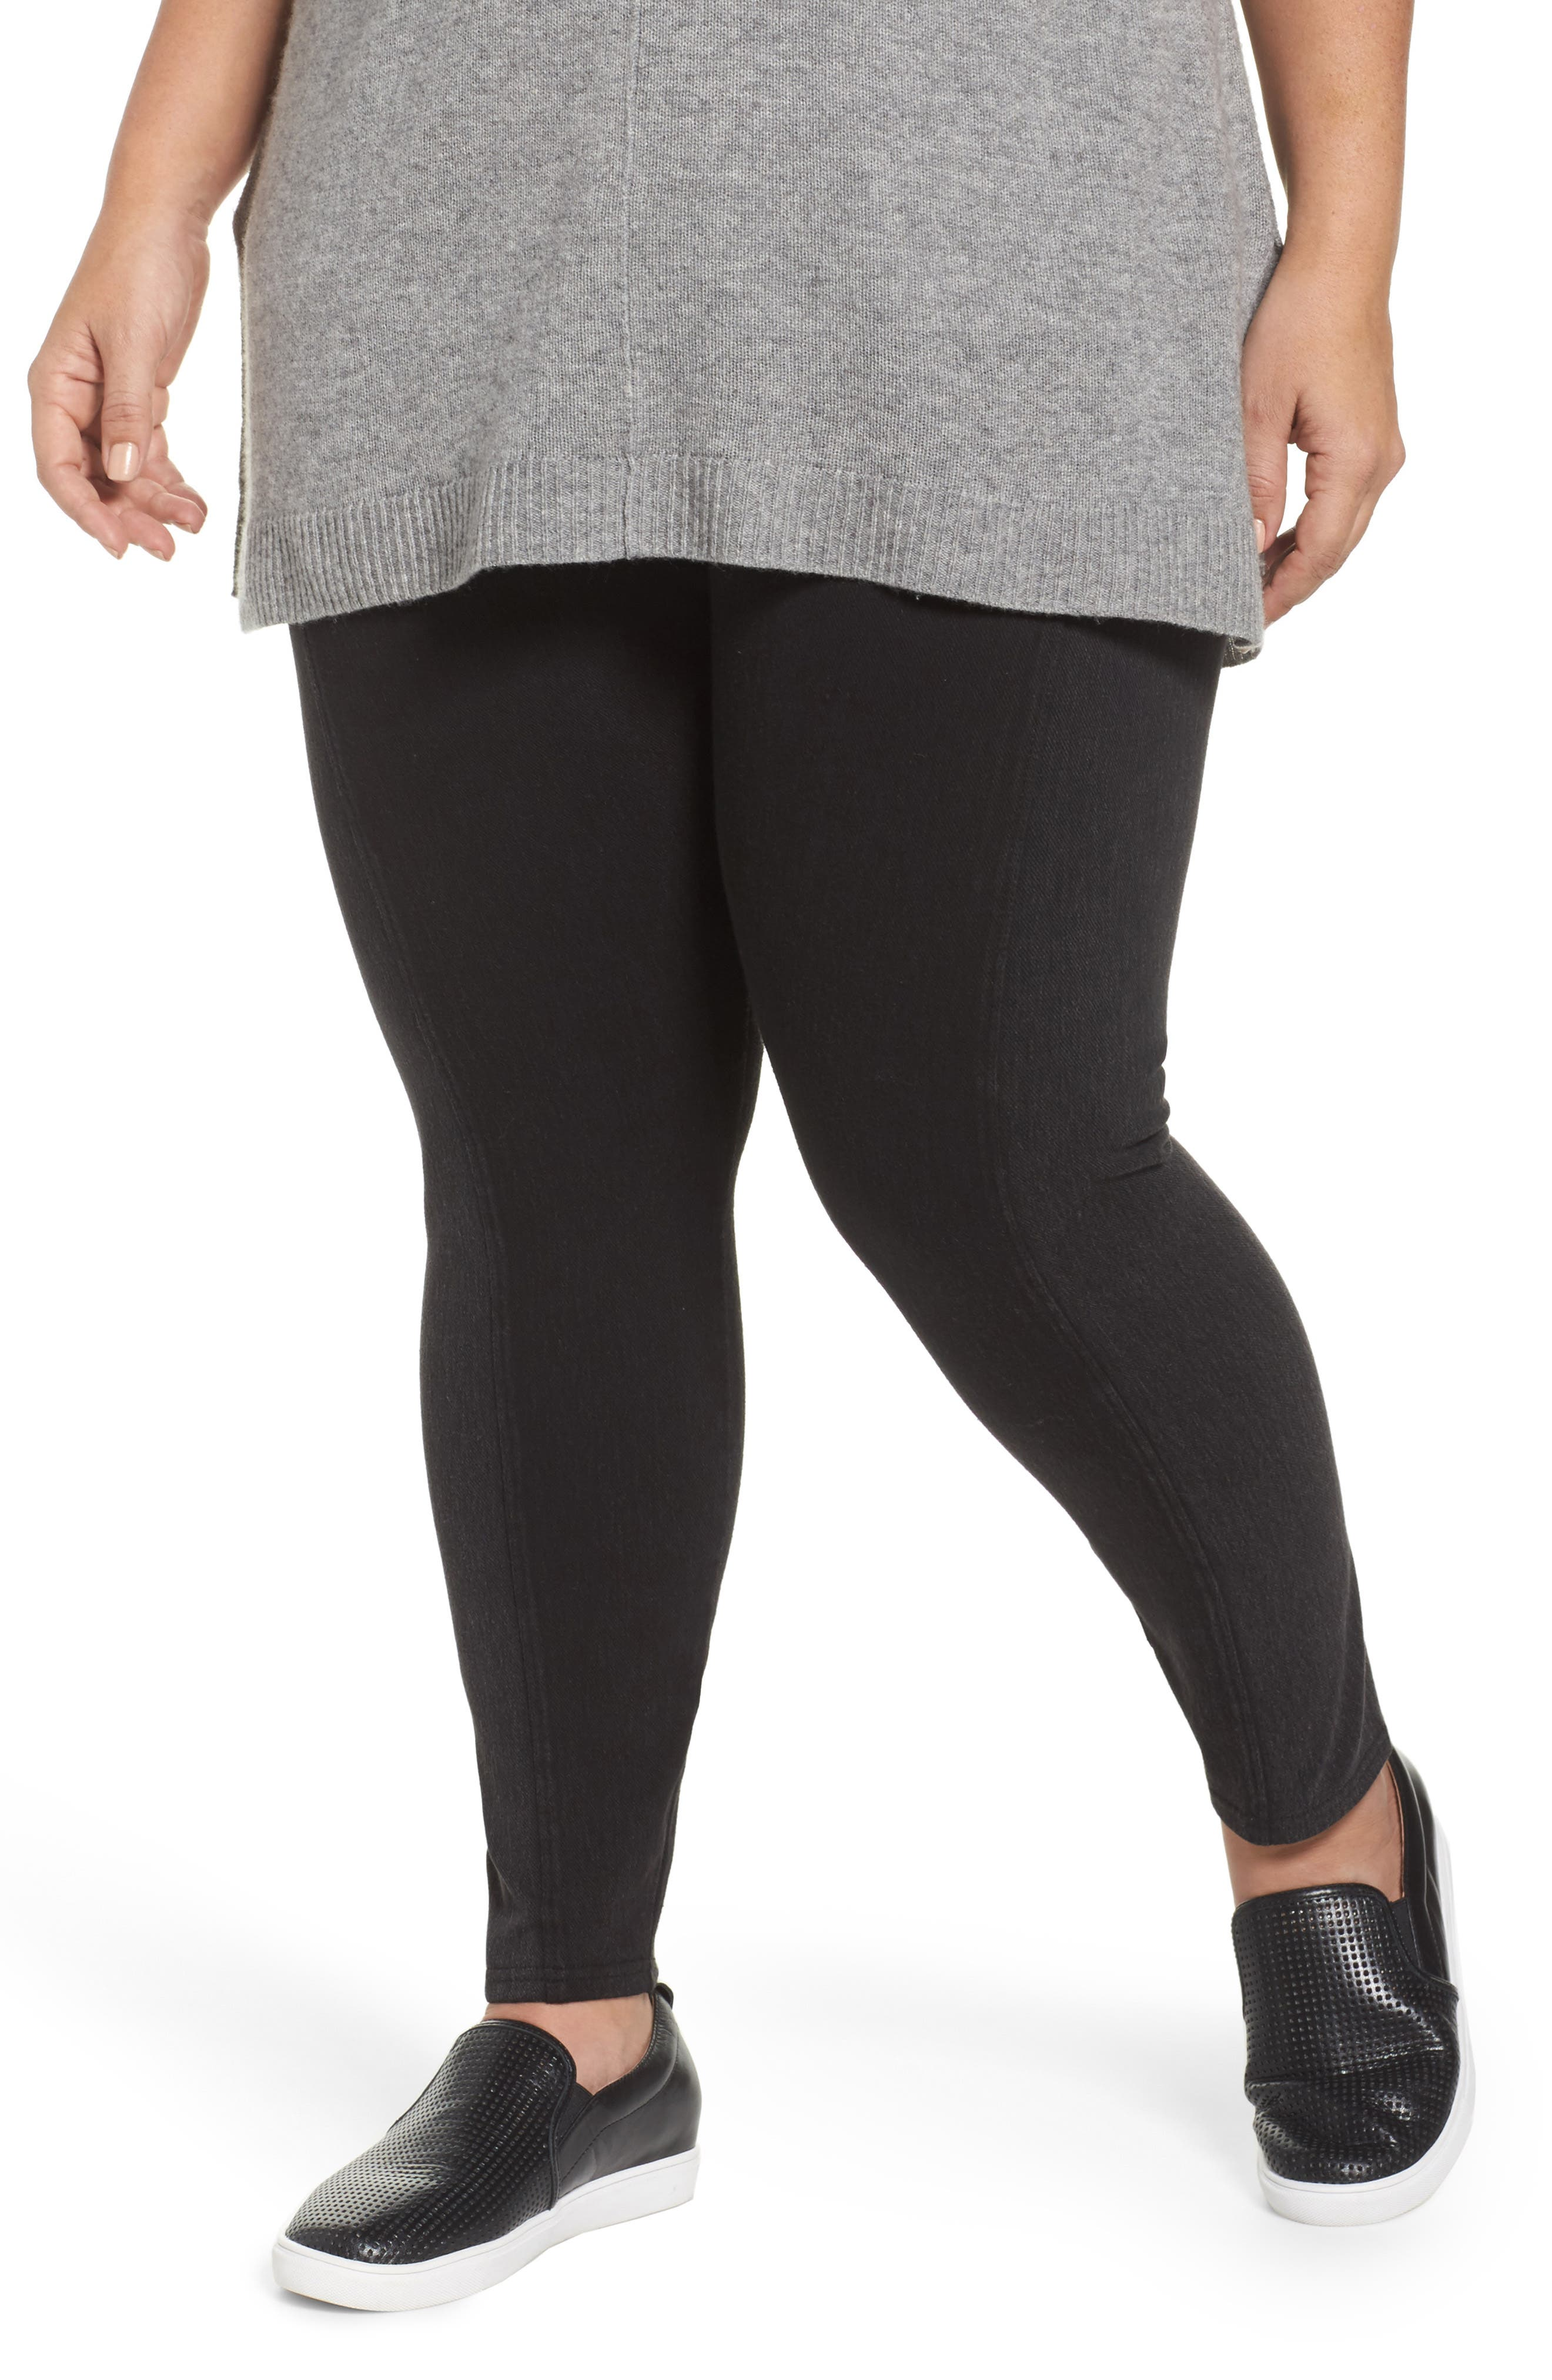 Marley Denim Leggings,                             Main thumbnail 1, color,                             Dark Grey